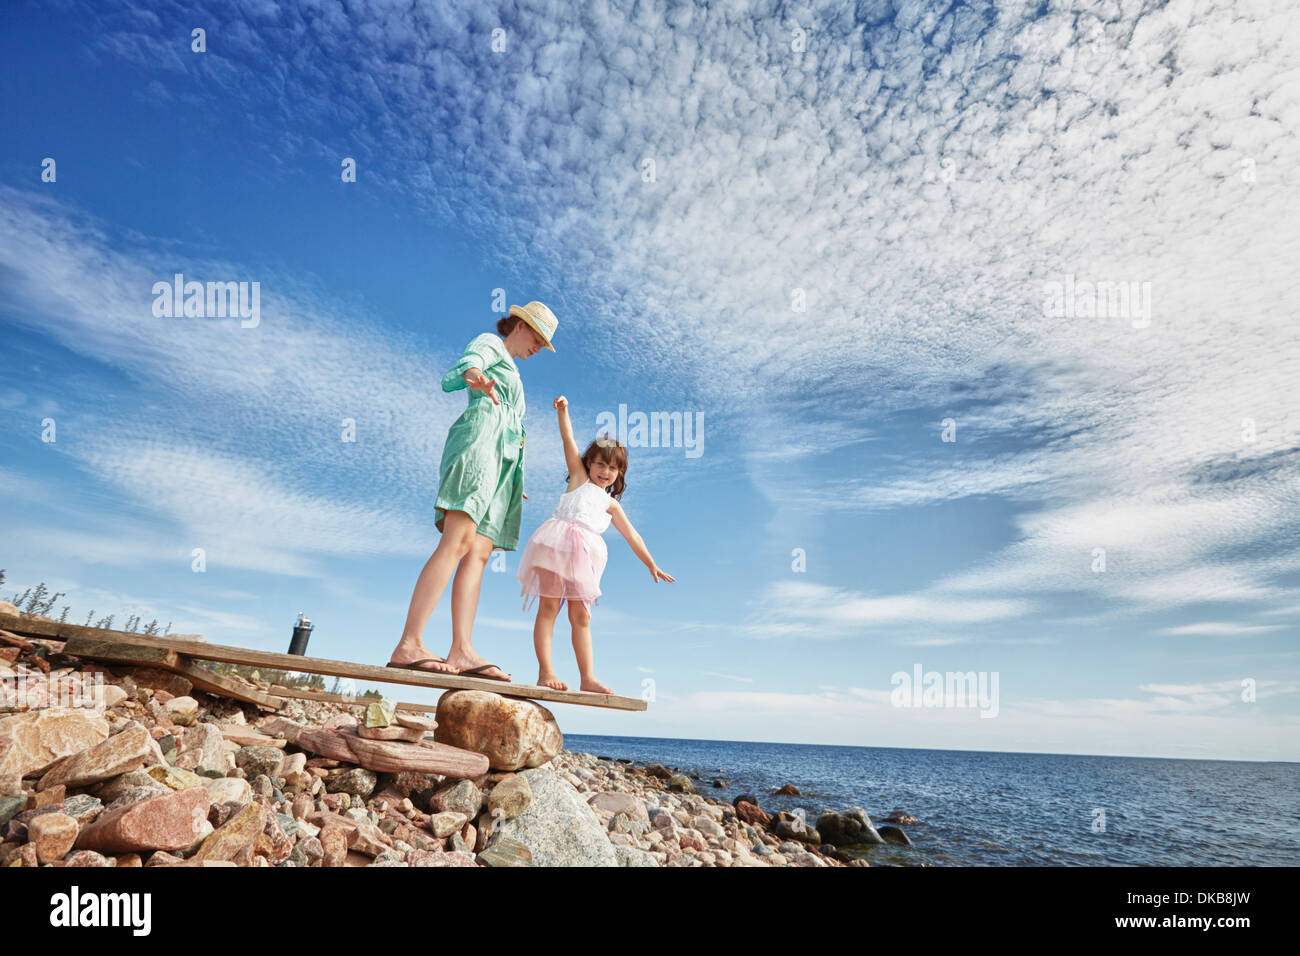 Mother and daughter on wooden plank on beach, Eggergrund, Sweden - Stock Image